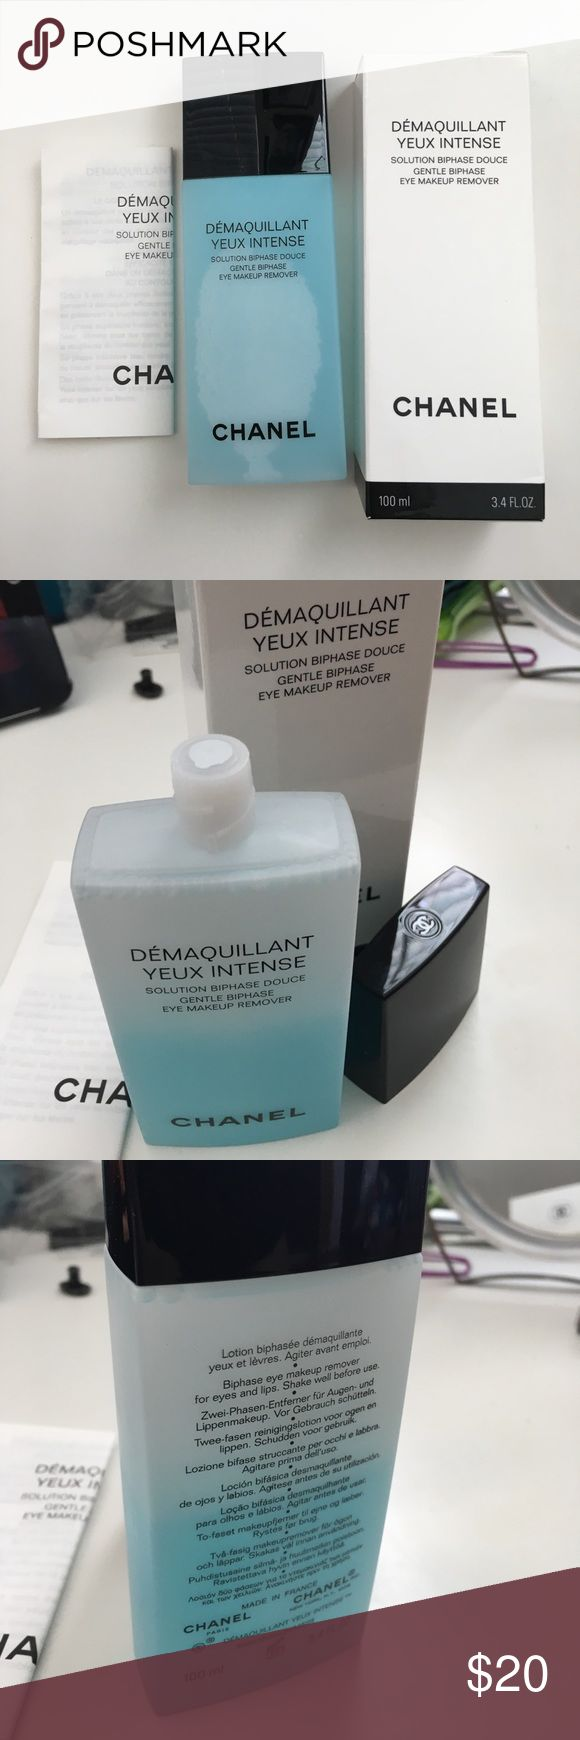 Chanel Eye Makeup Remover Chanel Demaquillant Yeux Intense Eye Makeup Remover. Sealed. Brand New. Never been used. Never been opened. Authentic. Box included. CHANEL Makeup